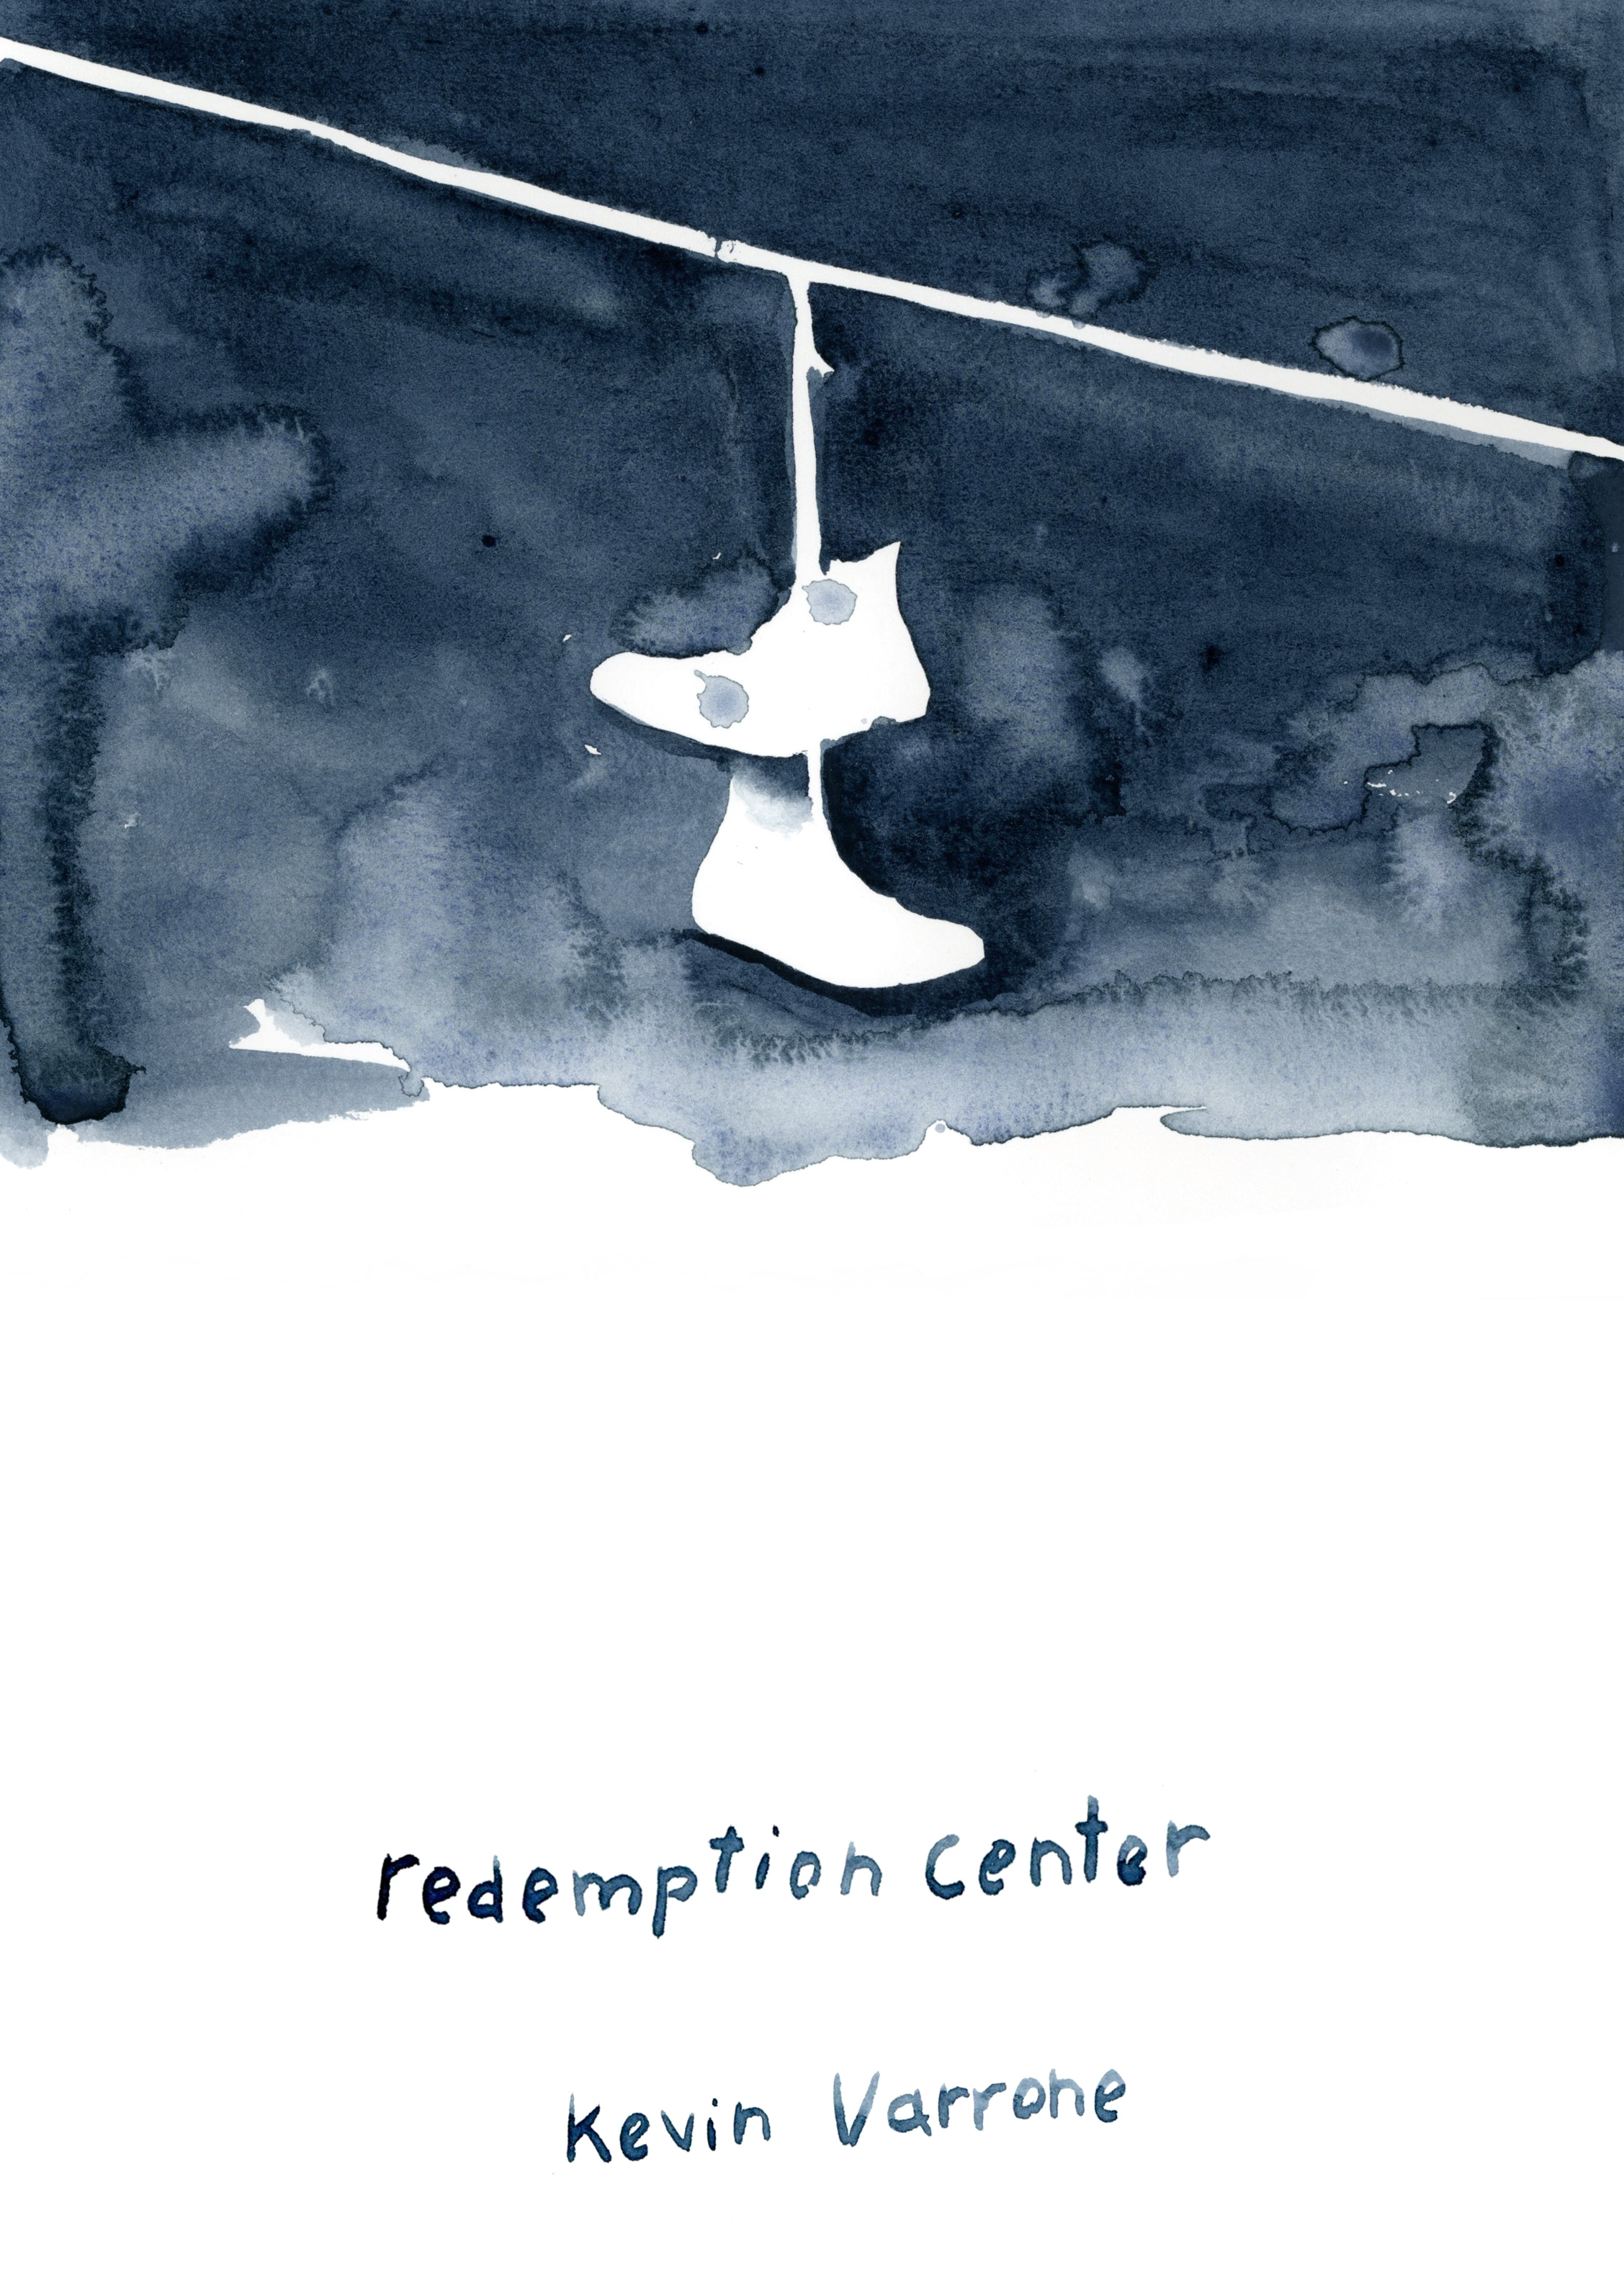 Redemption Center, by Kevin Varrone Chapbook published by Dop Leaf Press   Learn More…